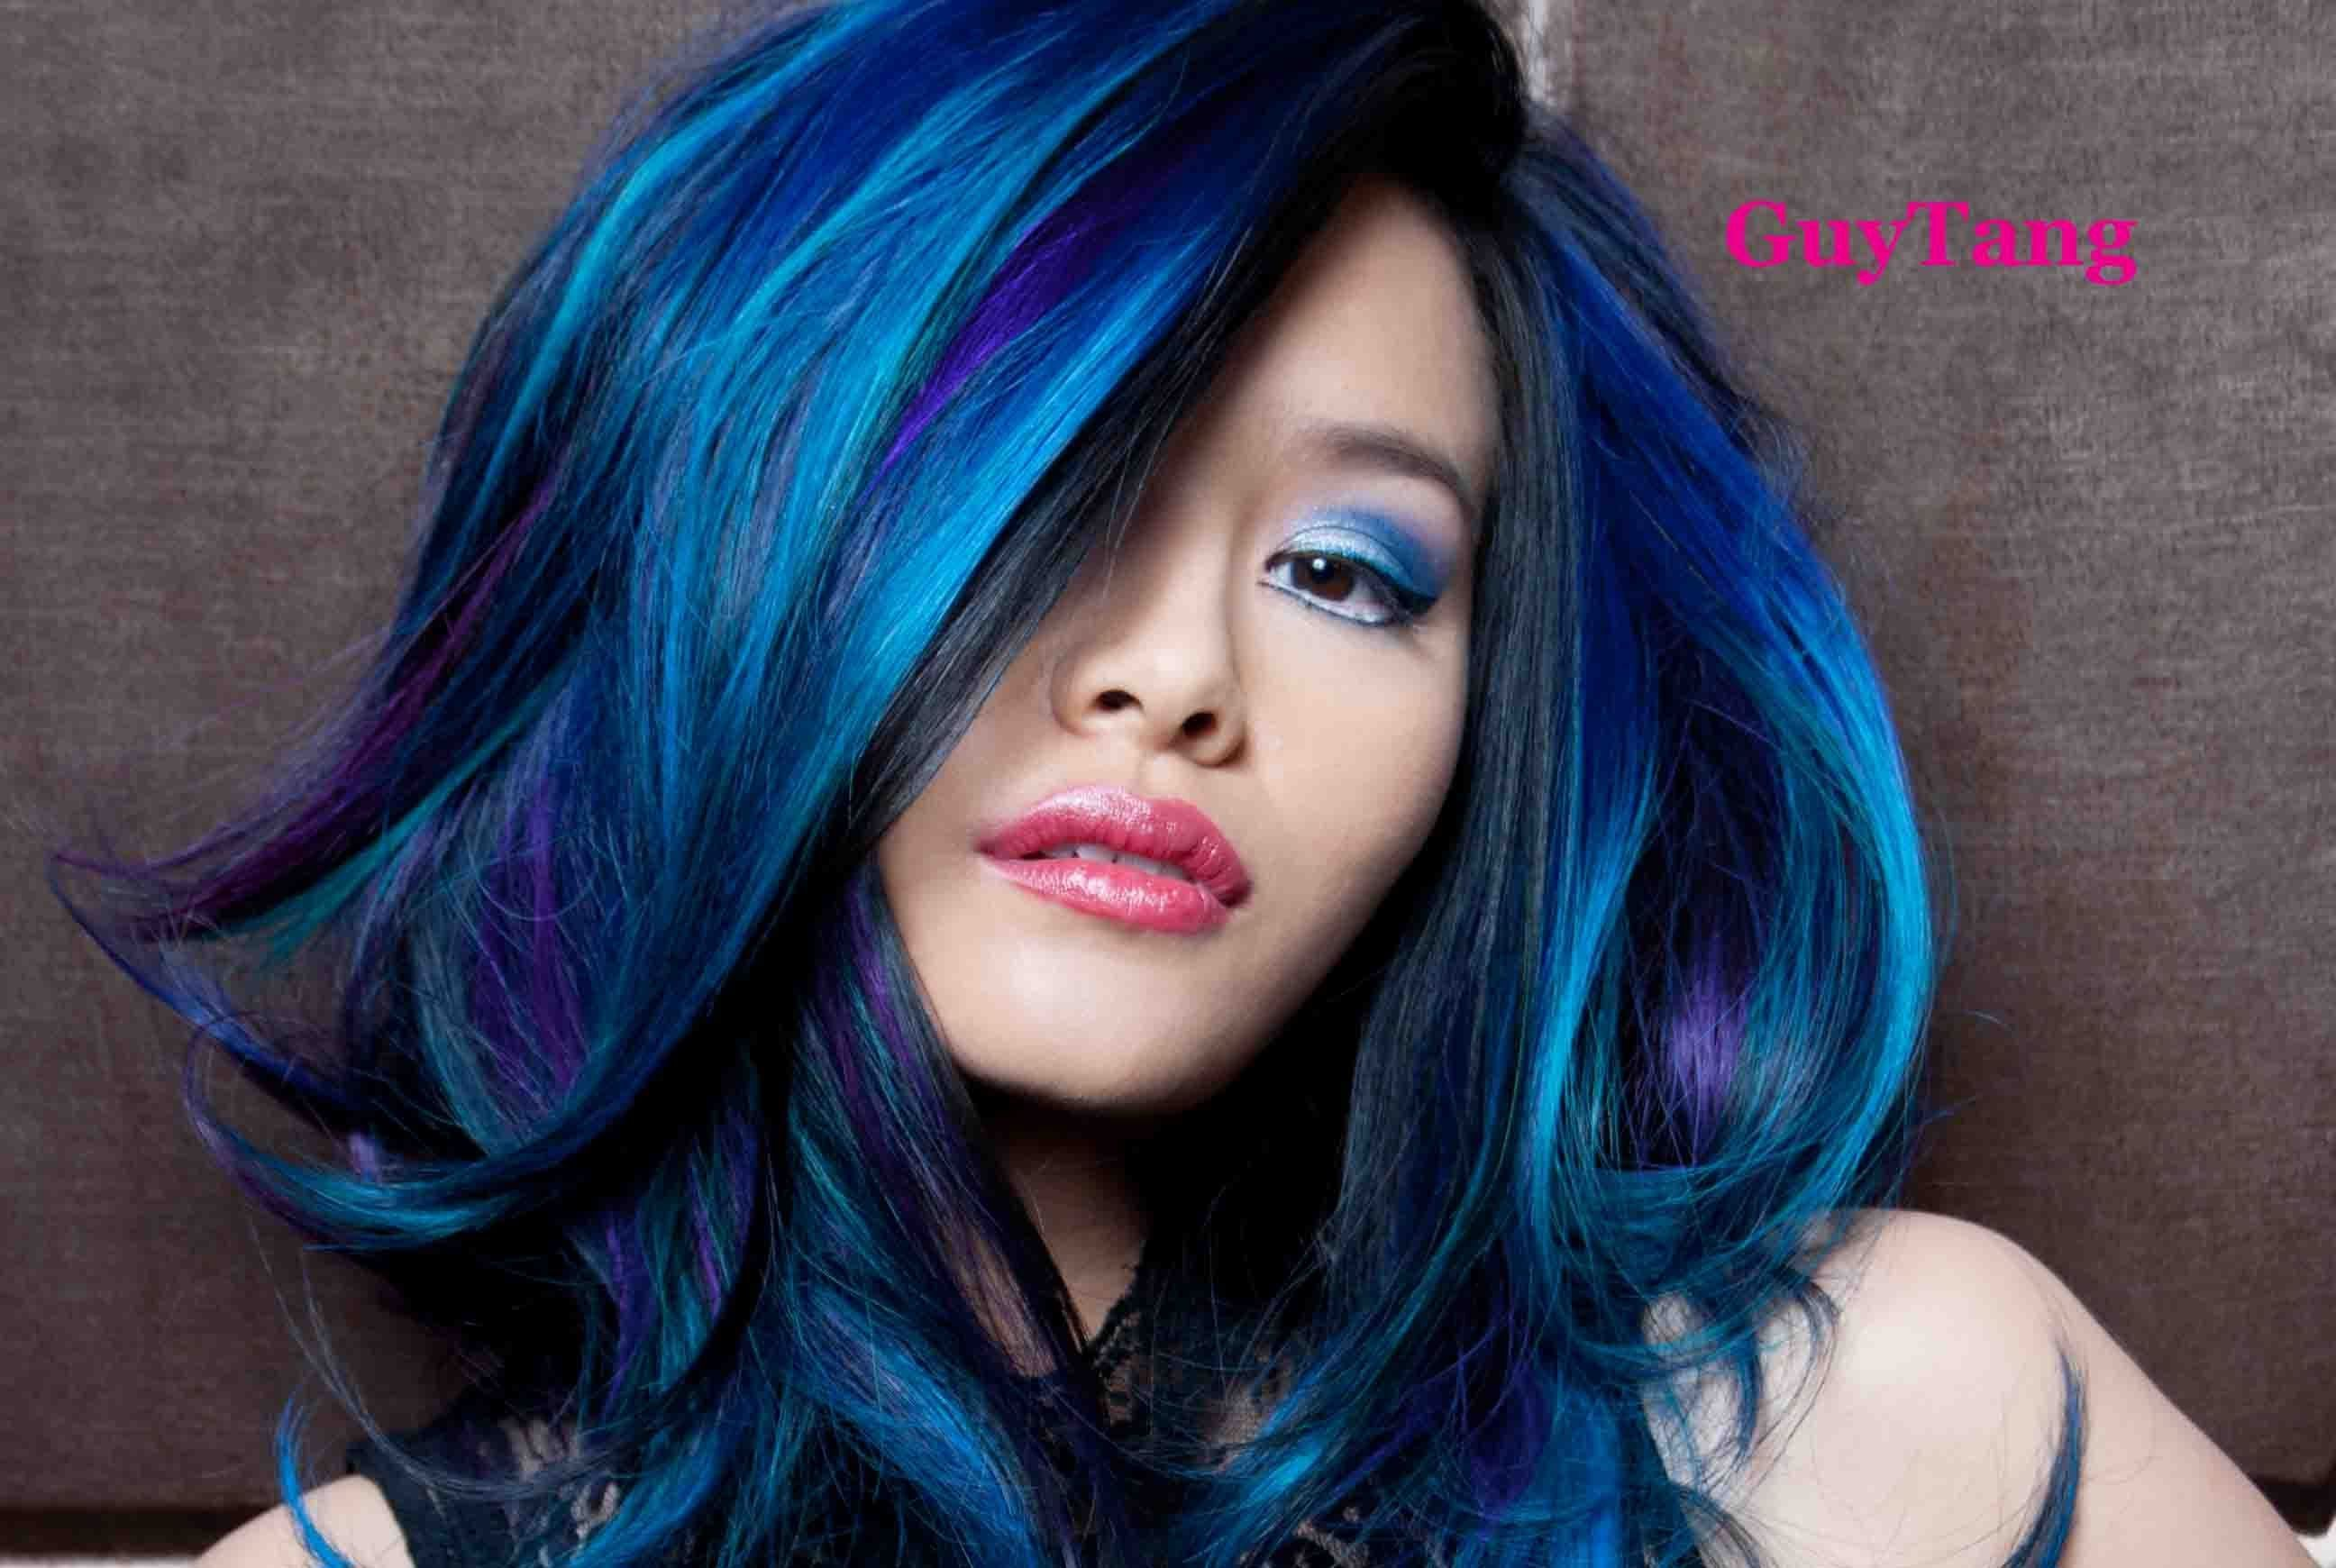 Guy tang turquoise blue purple ombre hair fashion hair colors